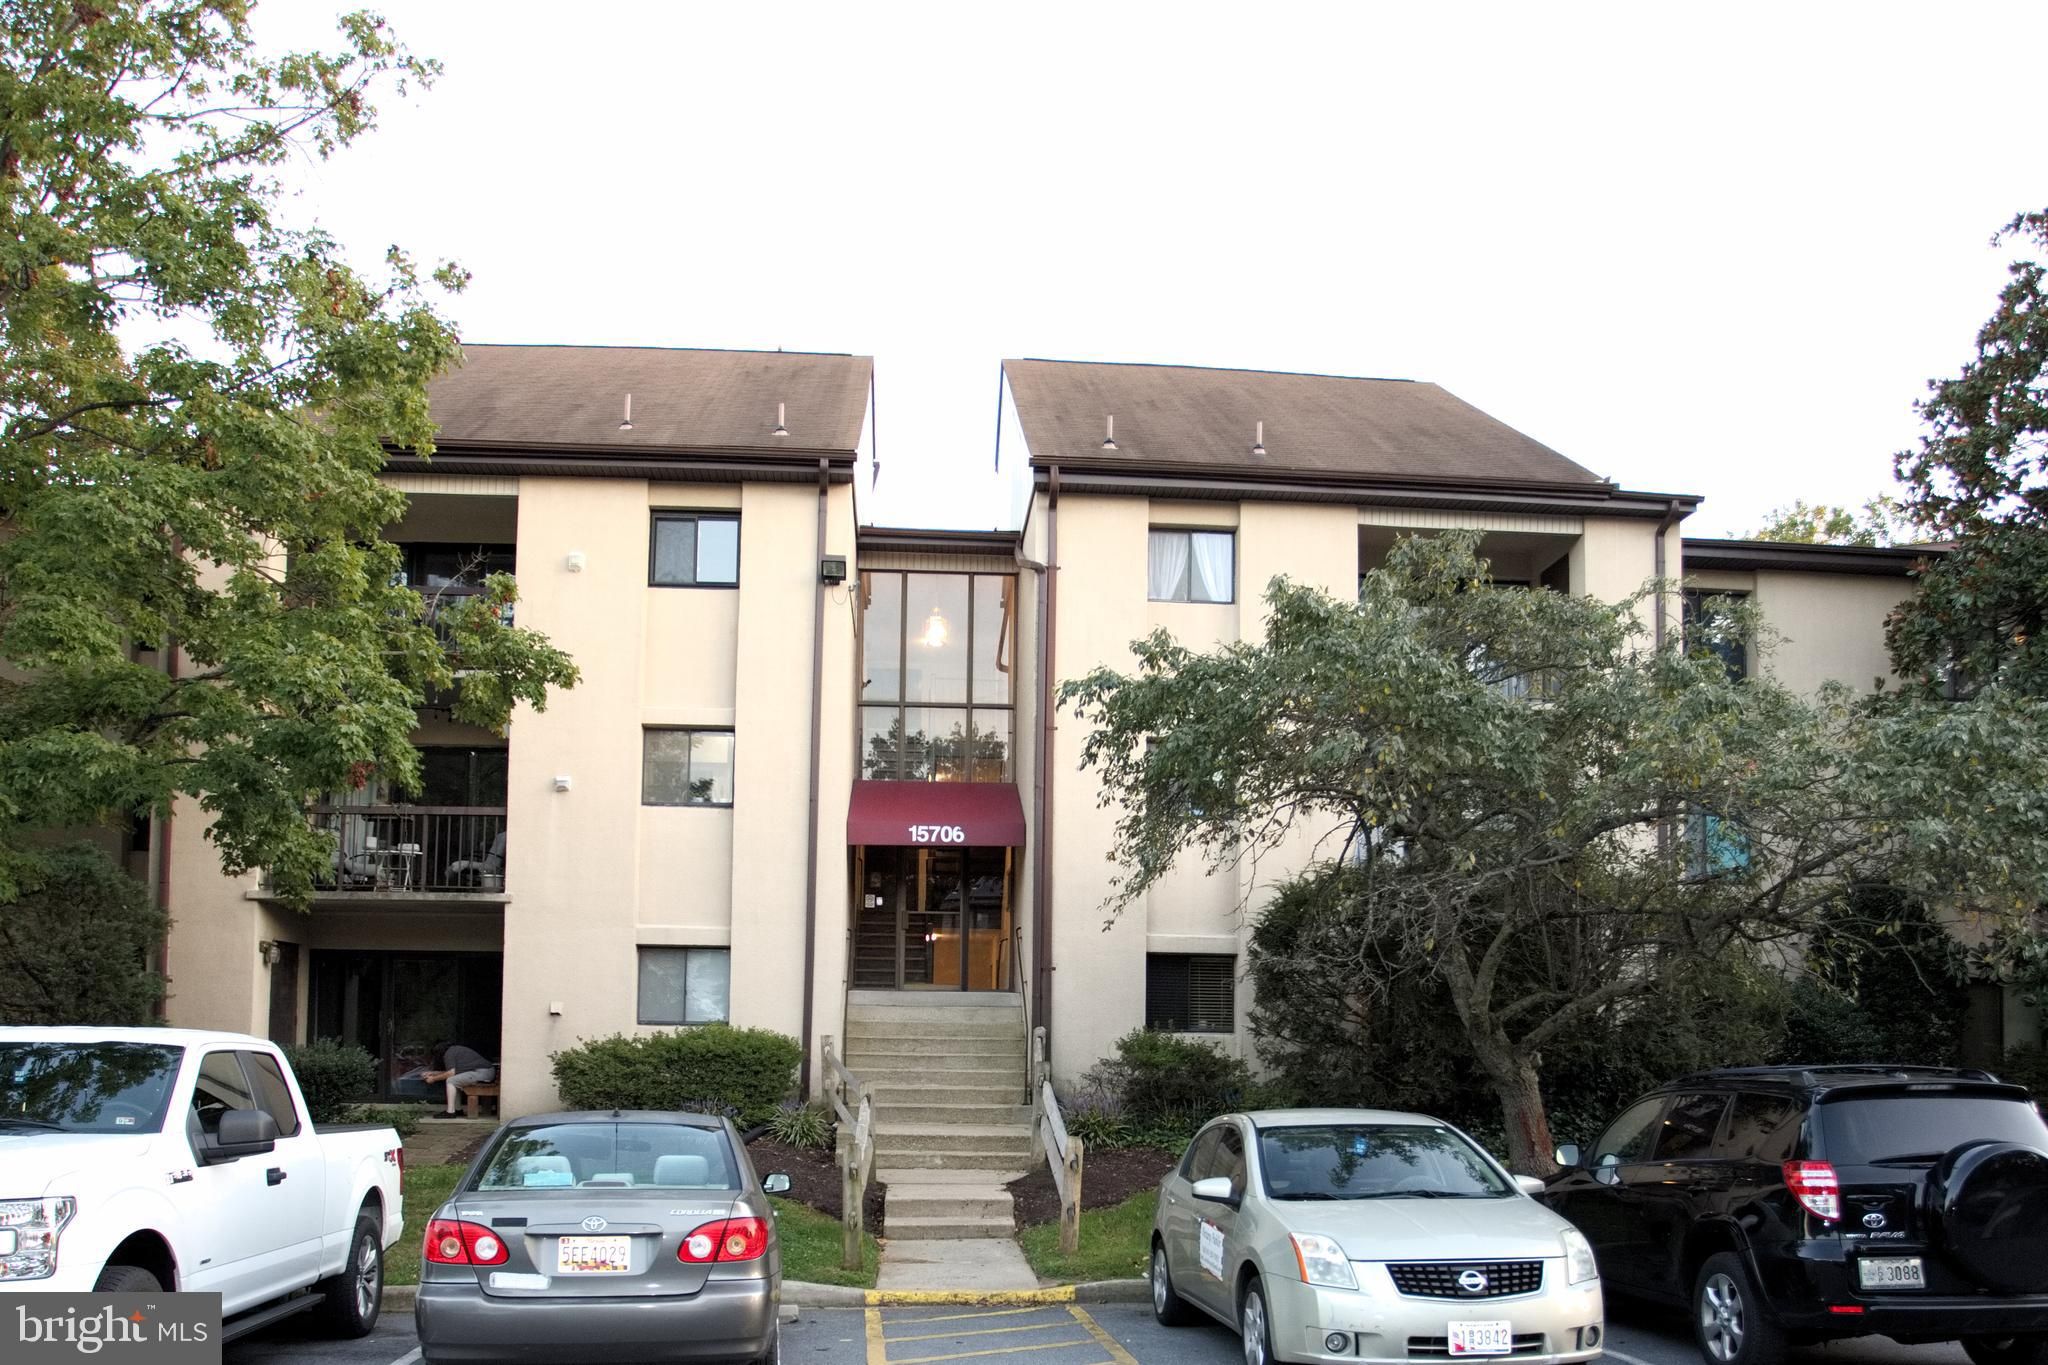 Large condo with 2nd floor loft. to include 1409 sq ft of living space plus a balcony.    Primary bedroom has primary bath and 2 walk in closets; Unit is on third floor.  New A/C, New Stainless Appliances, New Washer/Dryer, Fresh paint and ready to move in.  Community has a pool, clubhouse and there is a county park close by.   Close to 95 beltway